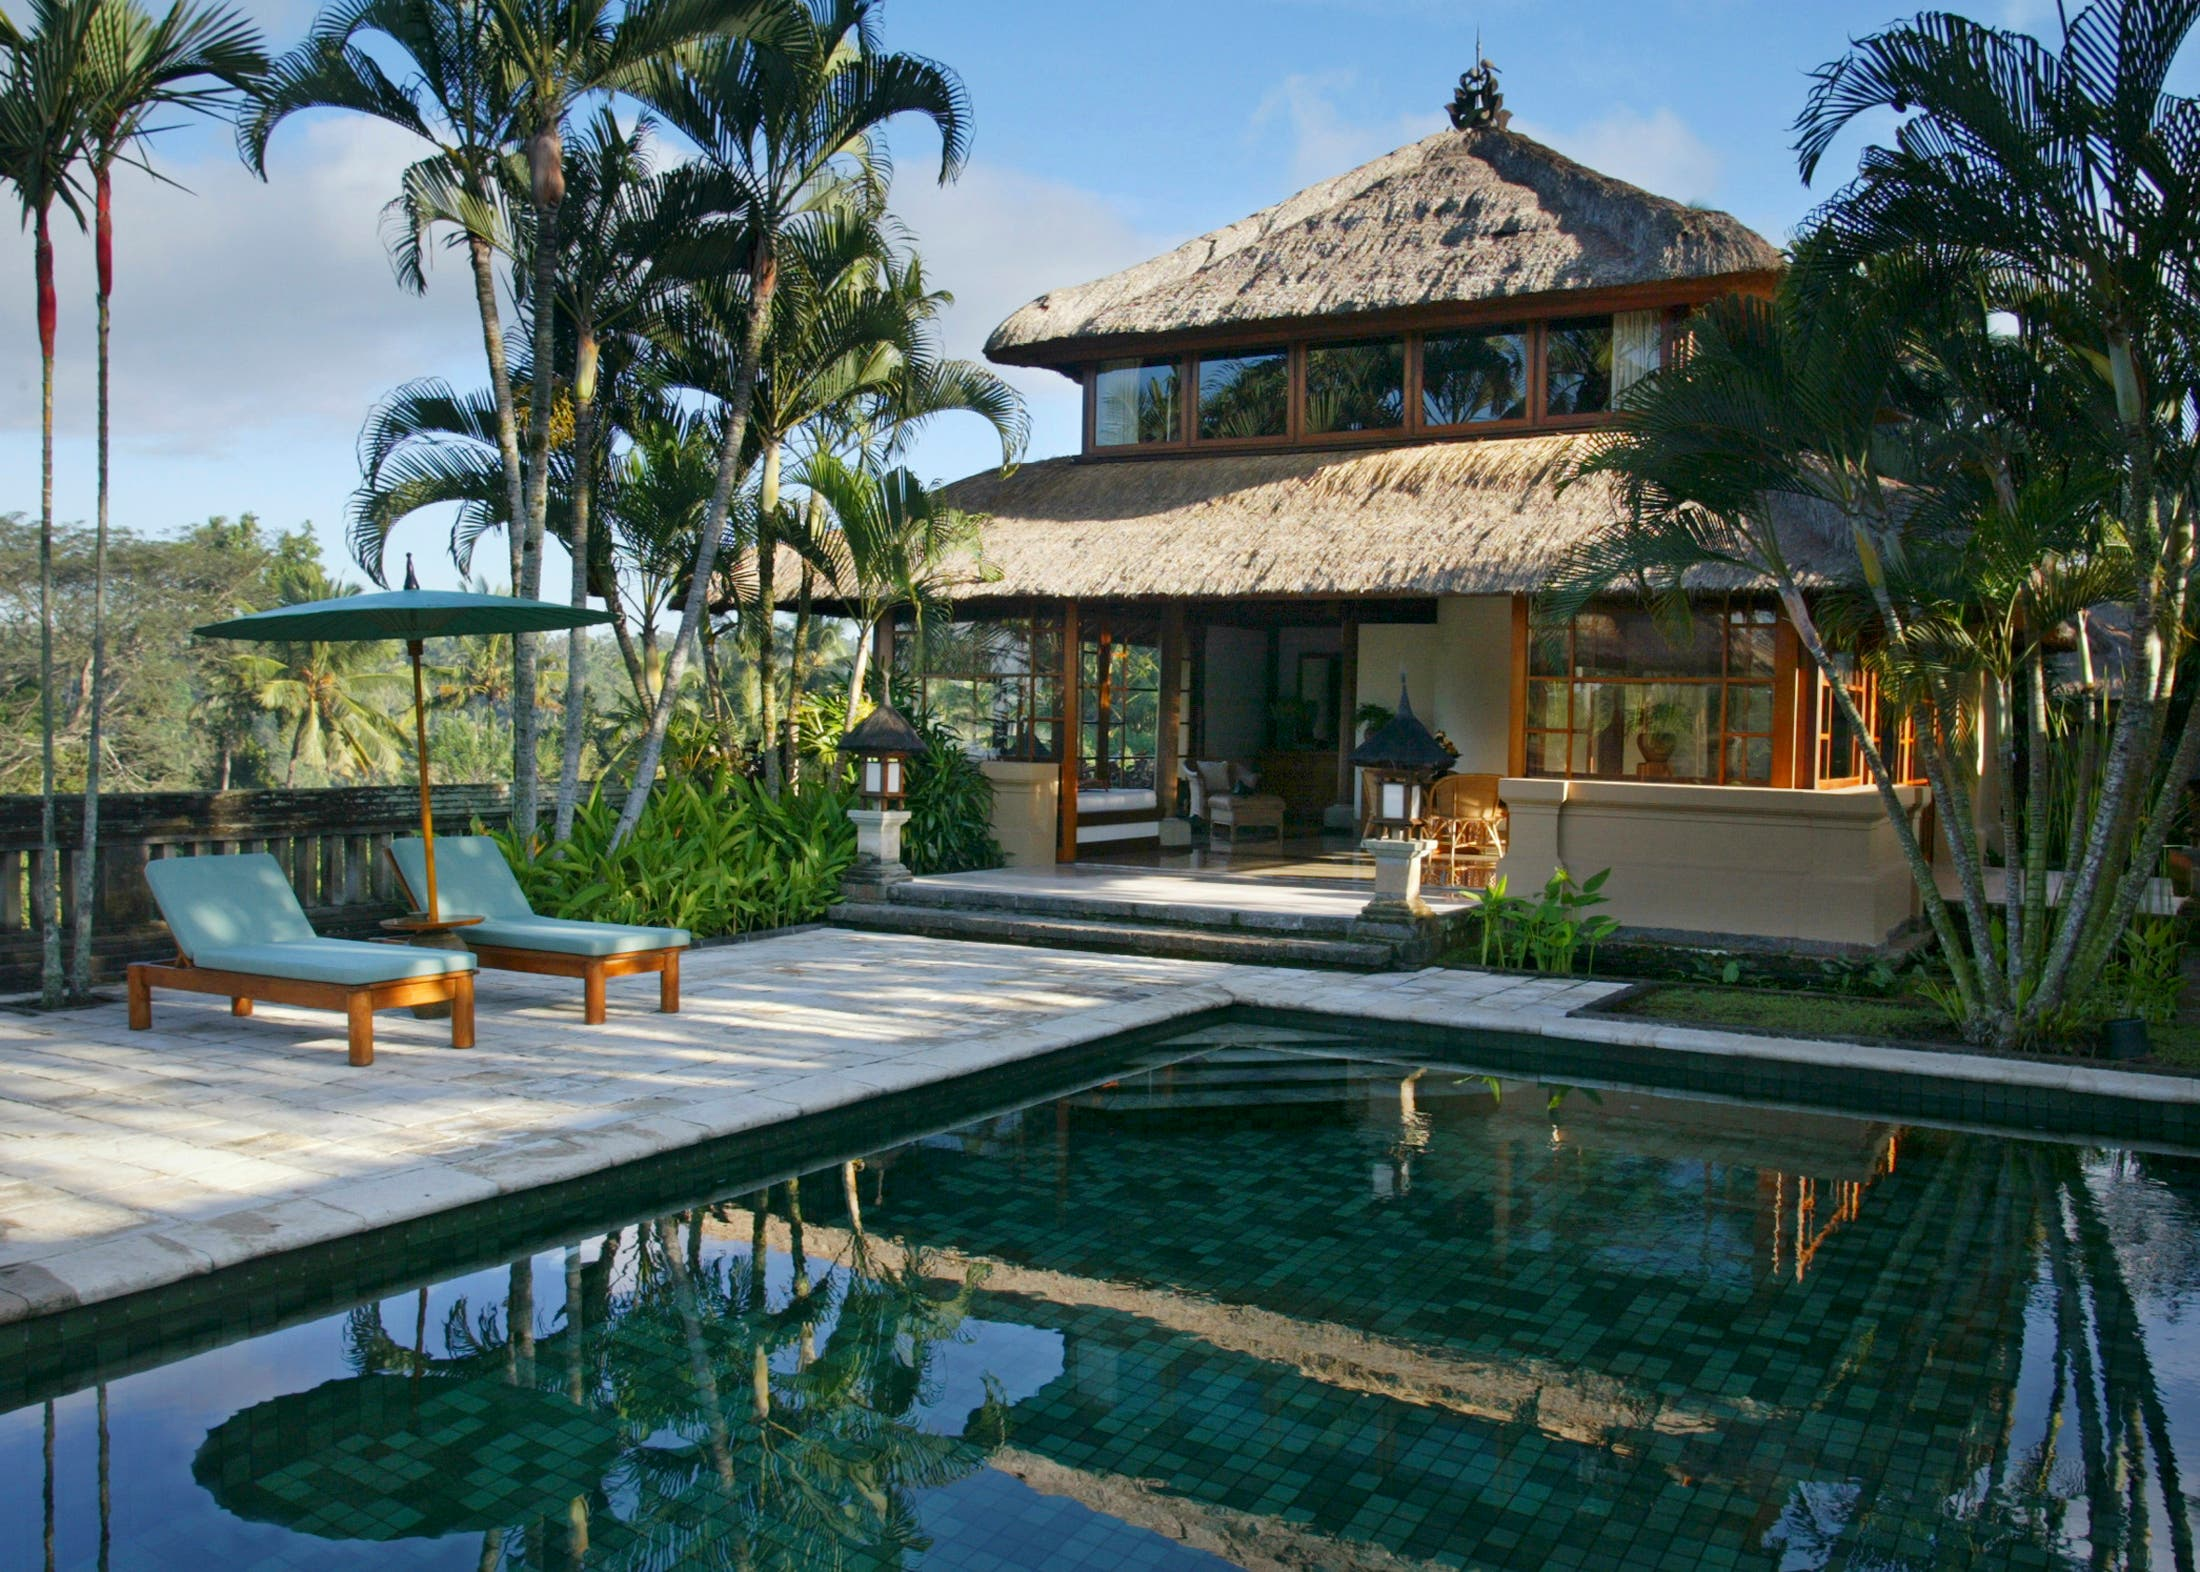 The Asmara Suite at the elegant Amandari Hotel in Ubud features a private pool, views of nearby rice terraces. (Reuters)